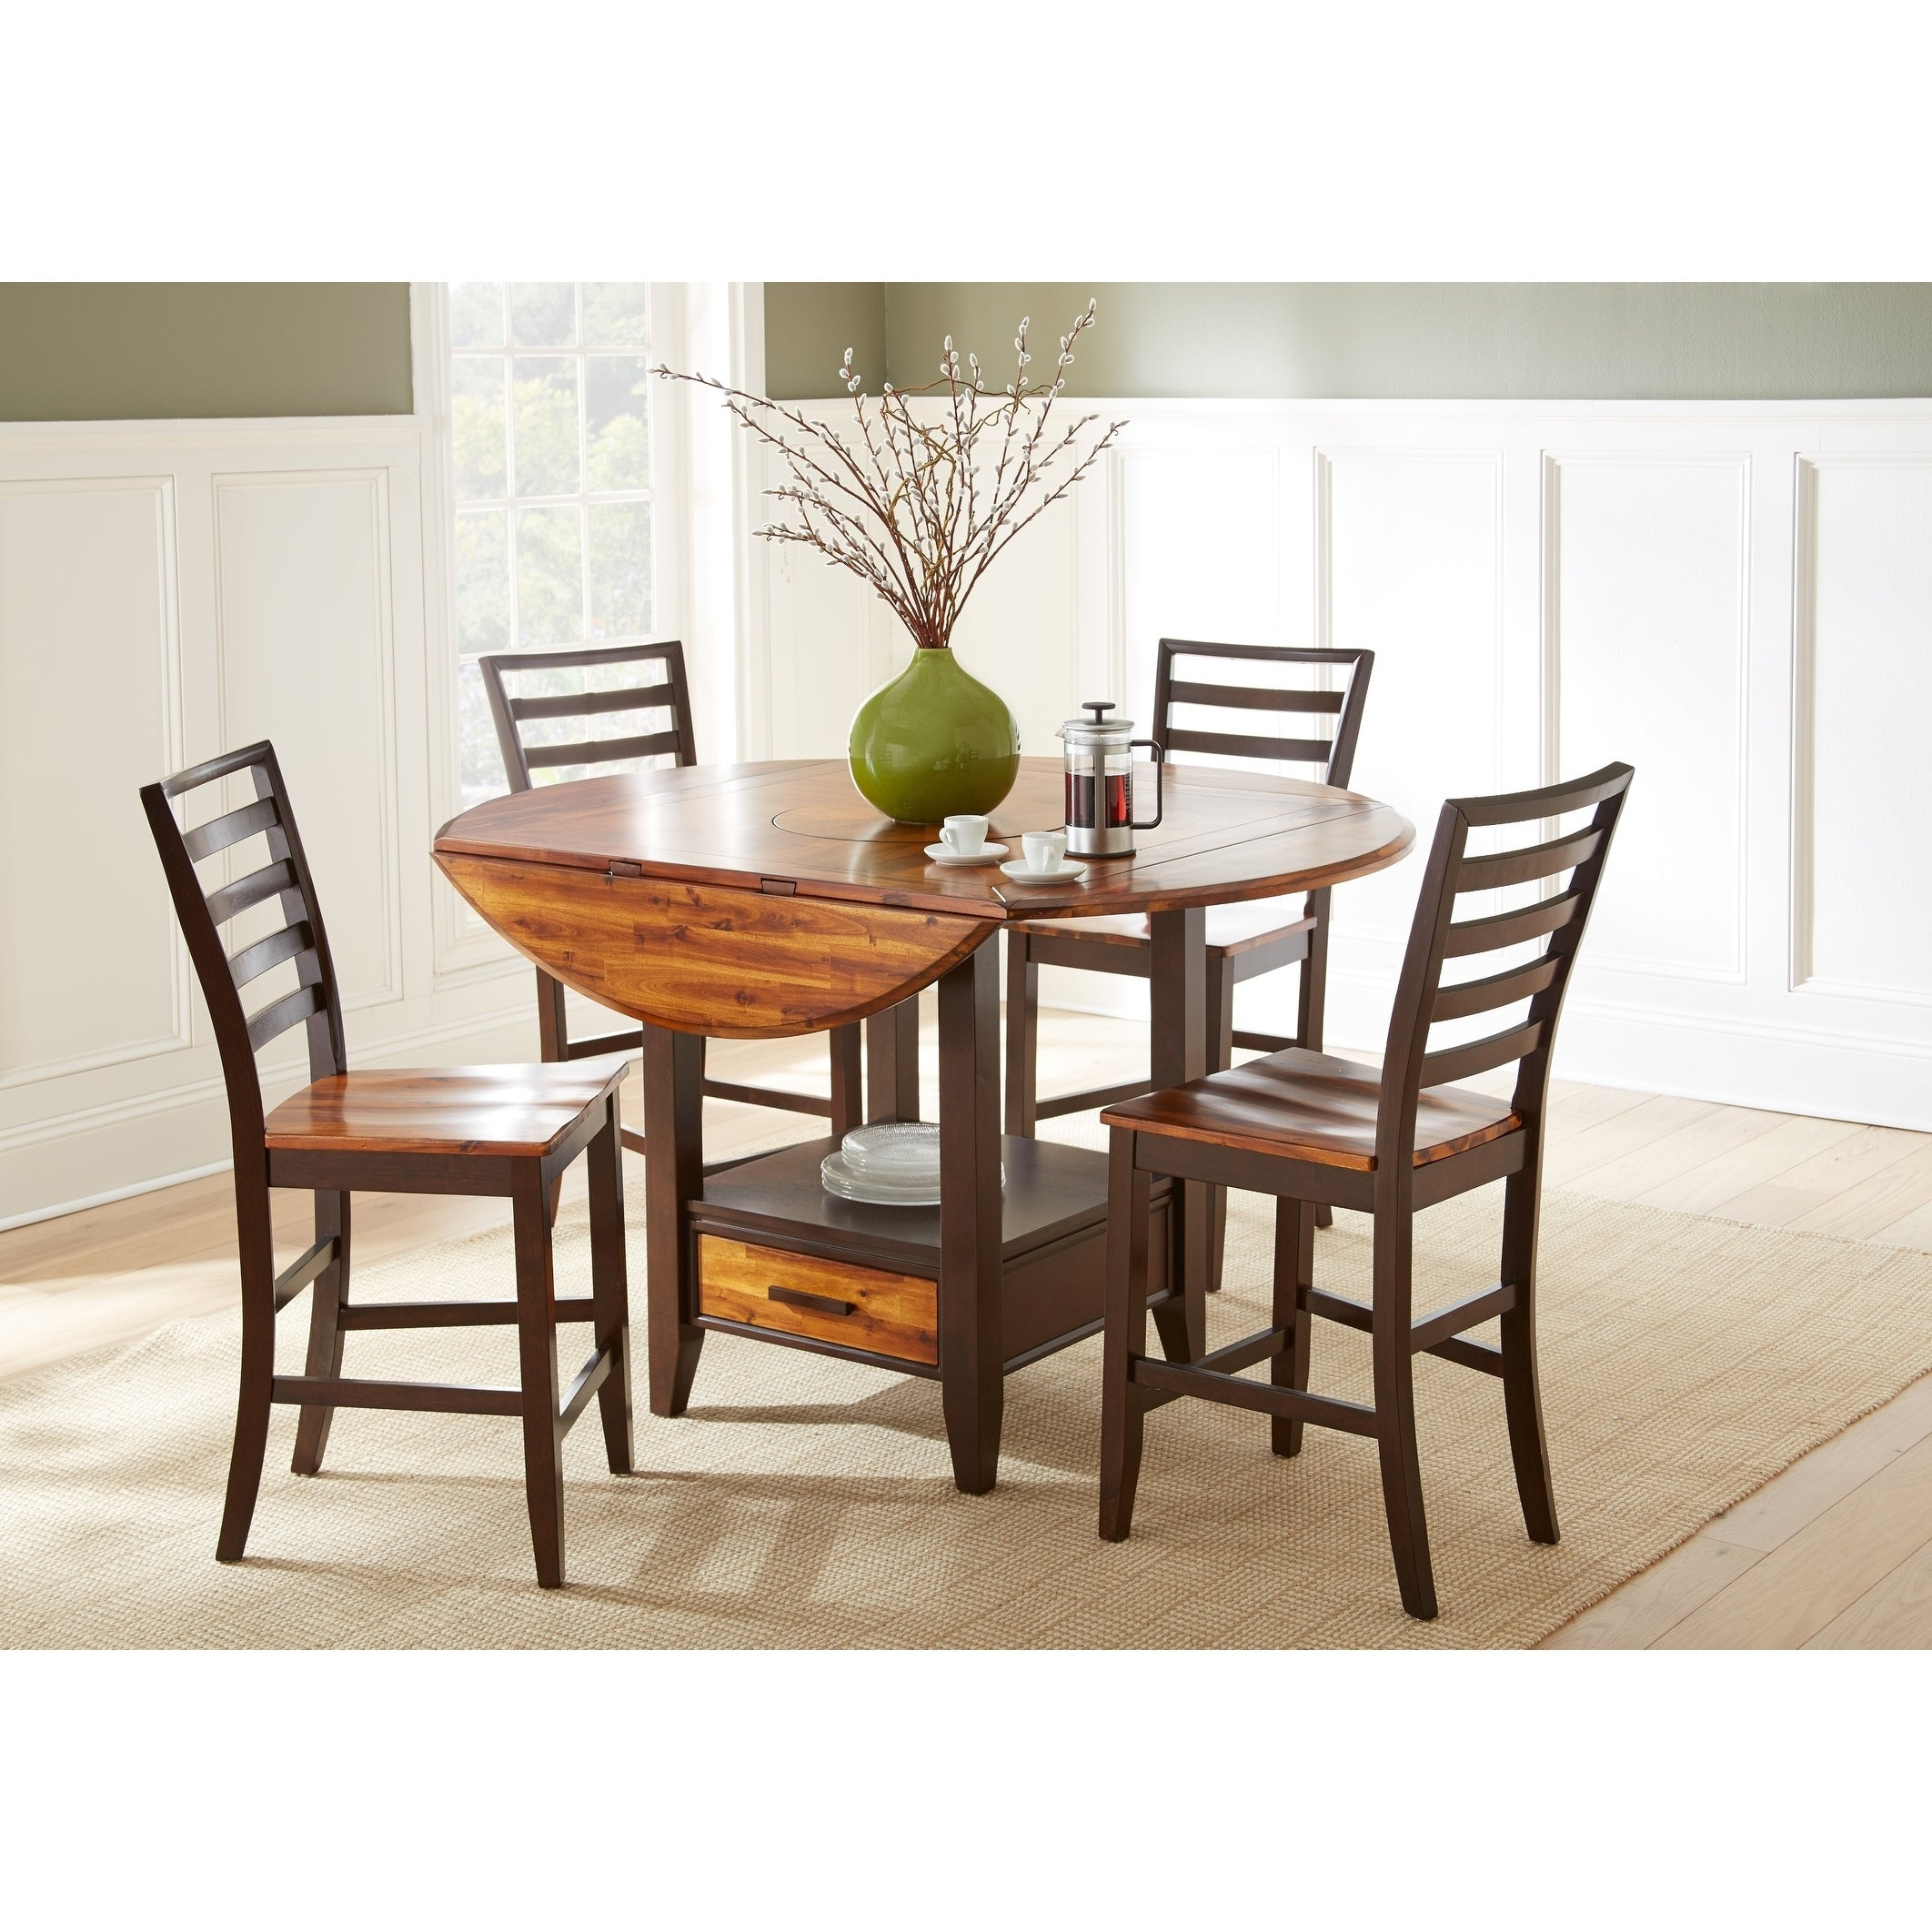 Buy Farmhouse Kitchen & Dining Room Sets Online At Overstock | Our Regarding Current Falmer 3 Piece Solid Wood Dining Sets (View 10 of 20)